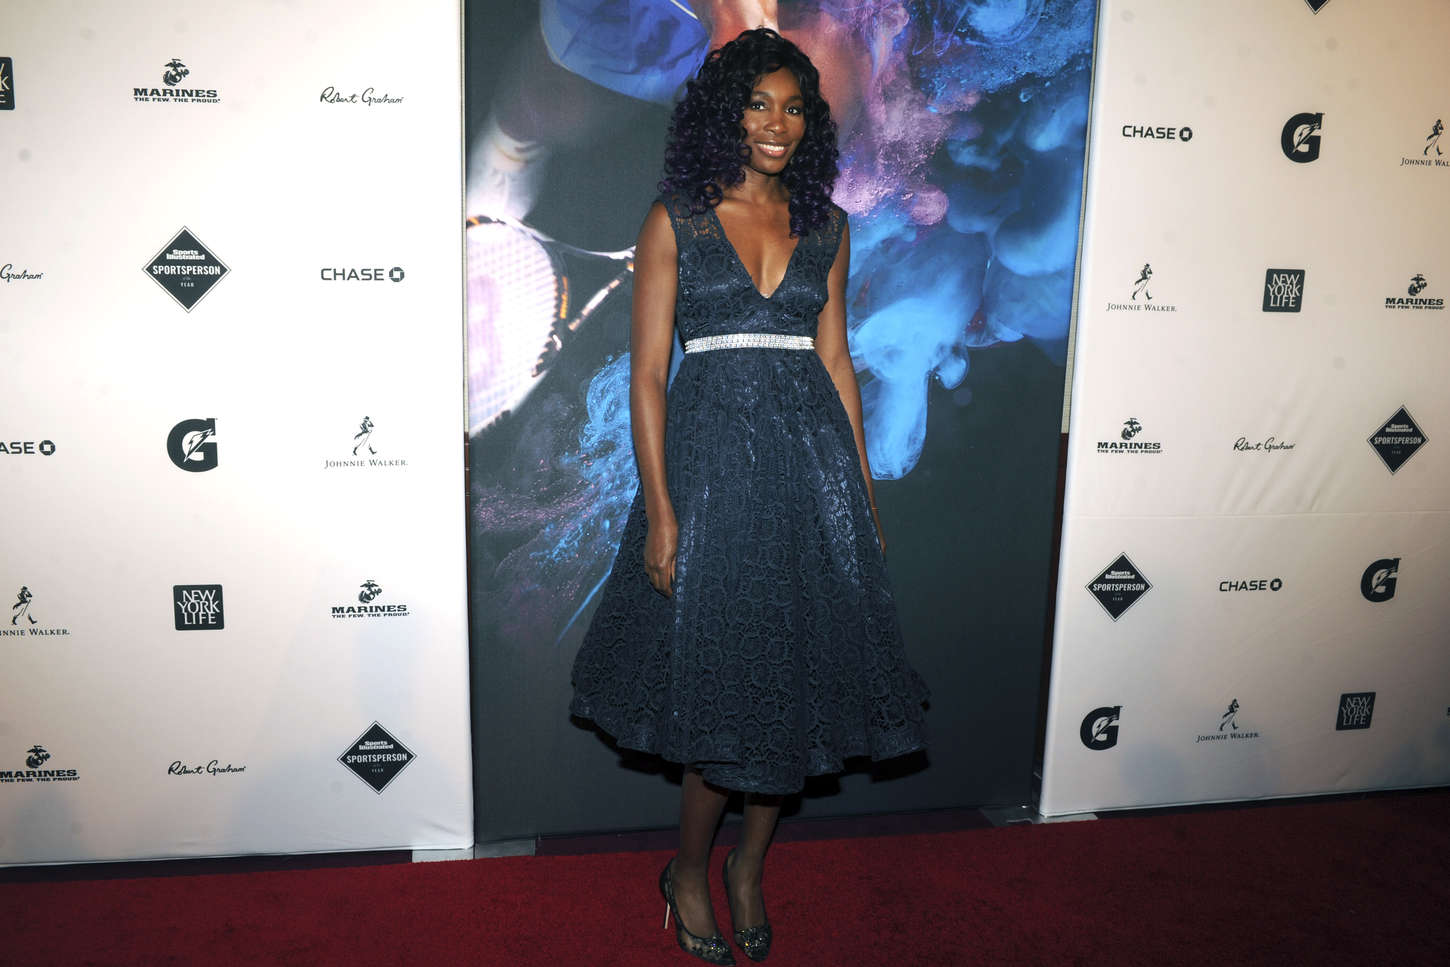 Venus Williams Sports Illustrated Sportsperson Of The Year Ceremony in New York